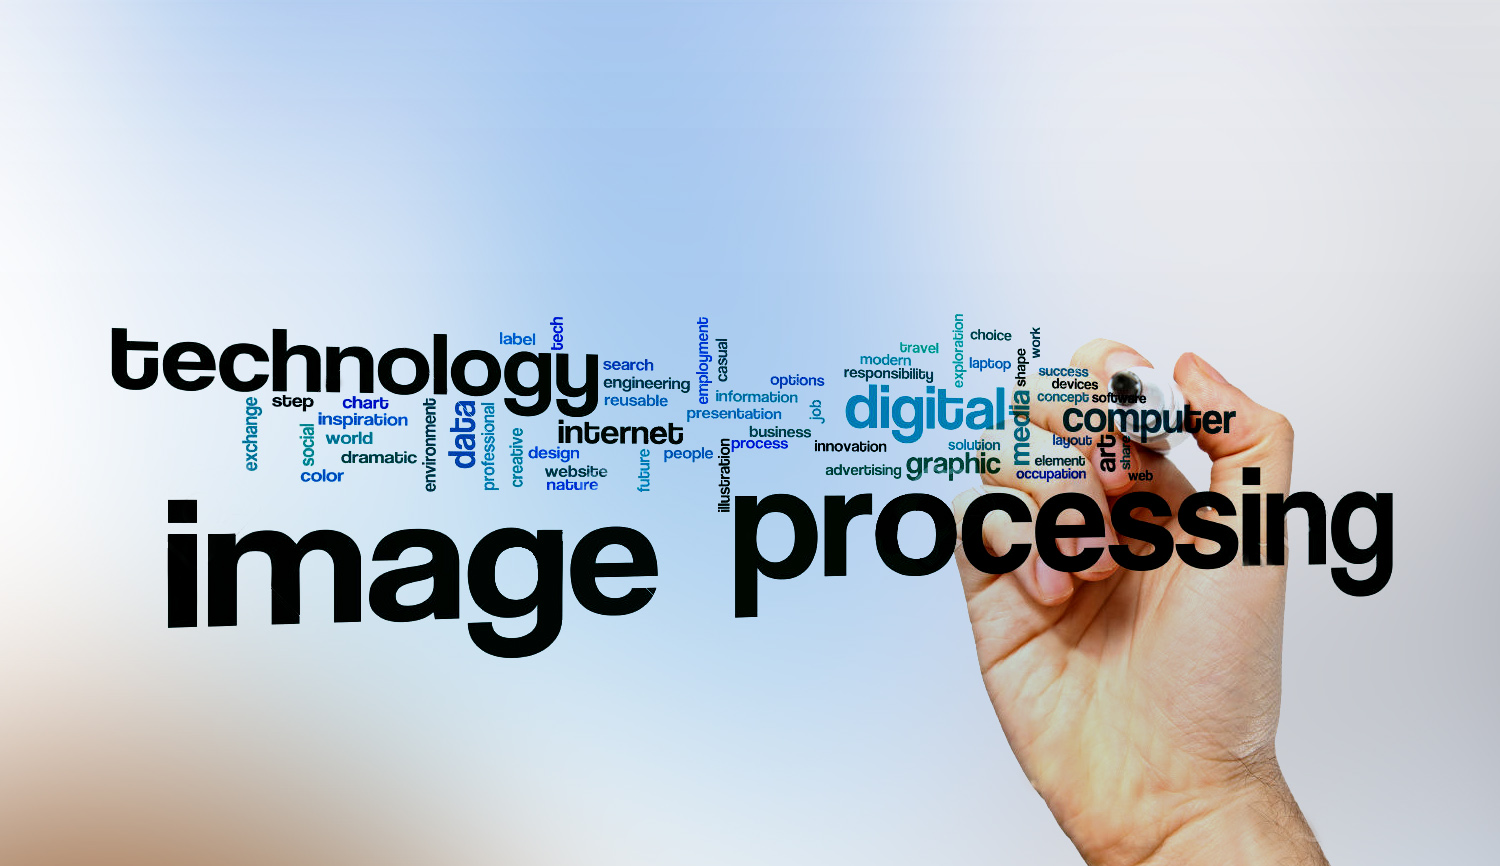 topics in Image processing